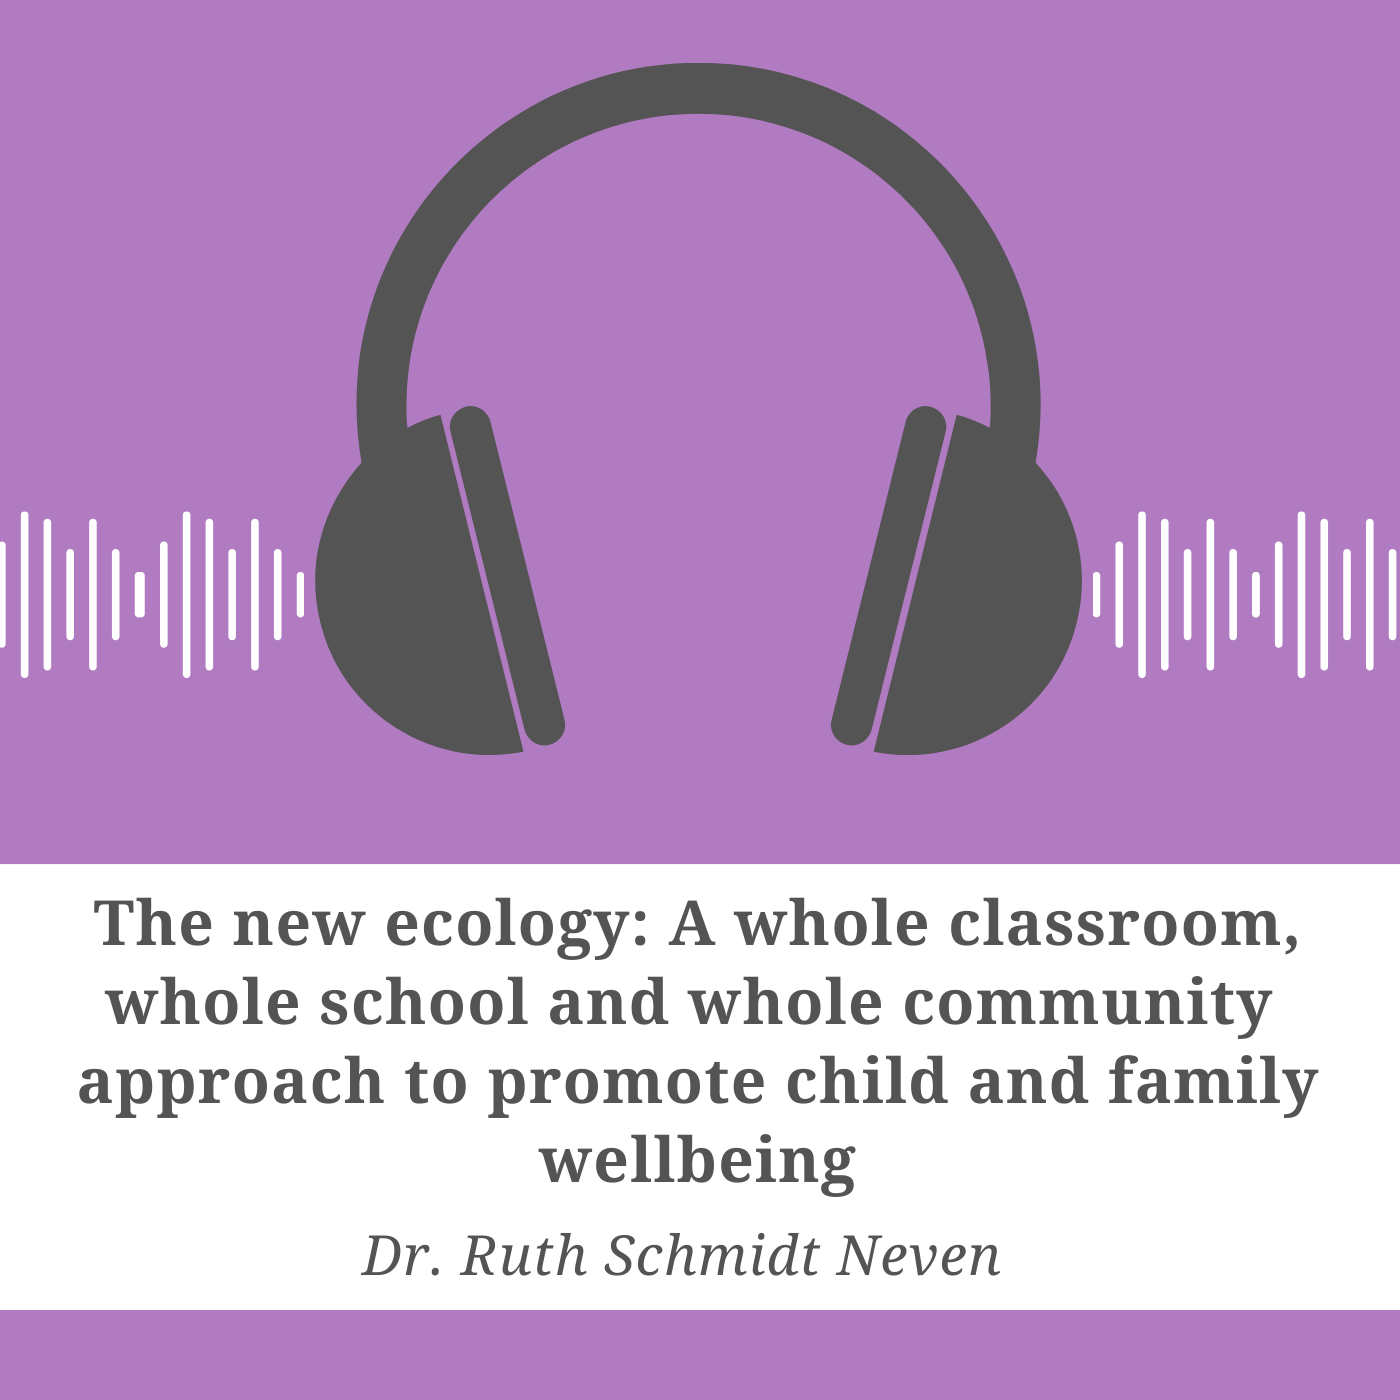 The New Ecology: A whole classroom, whole school, and whole community approach